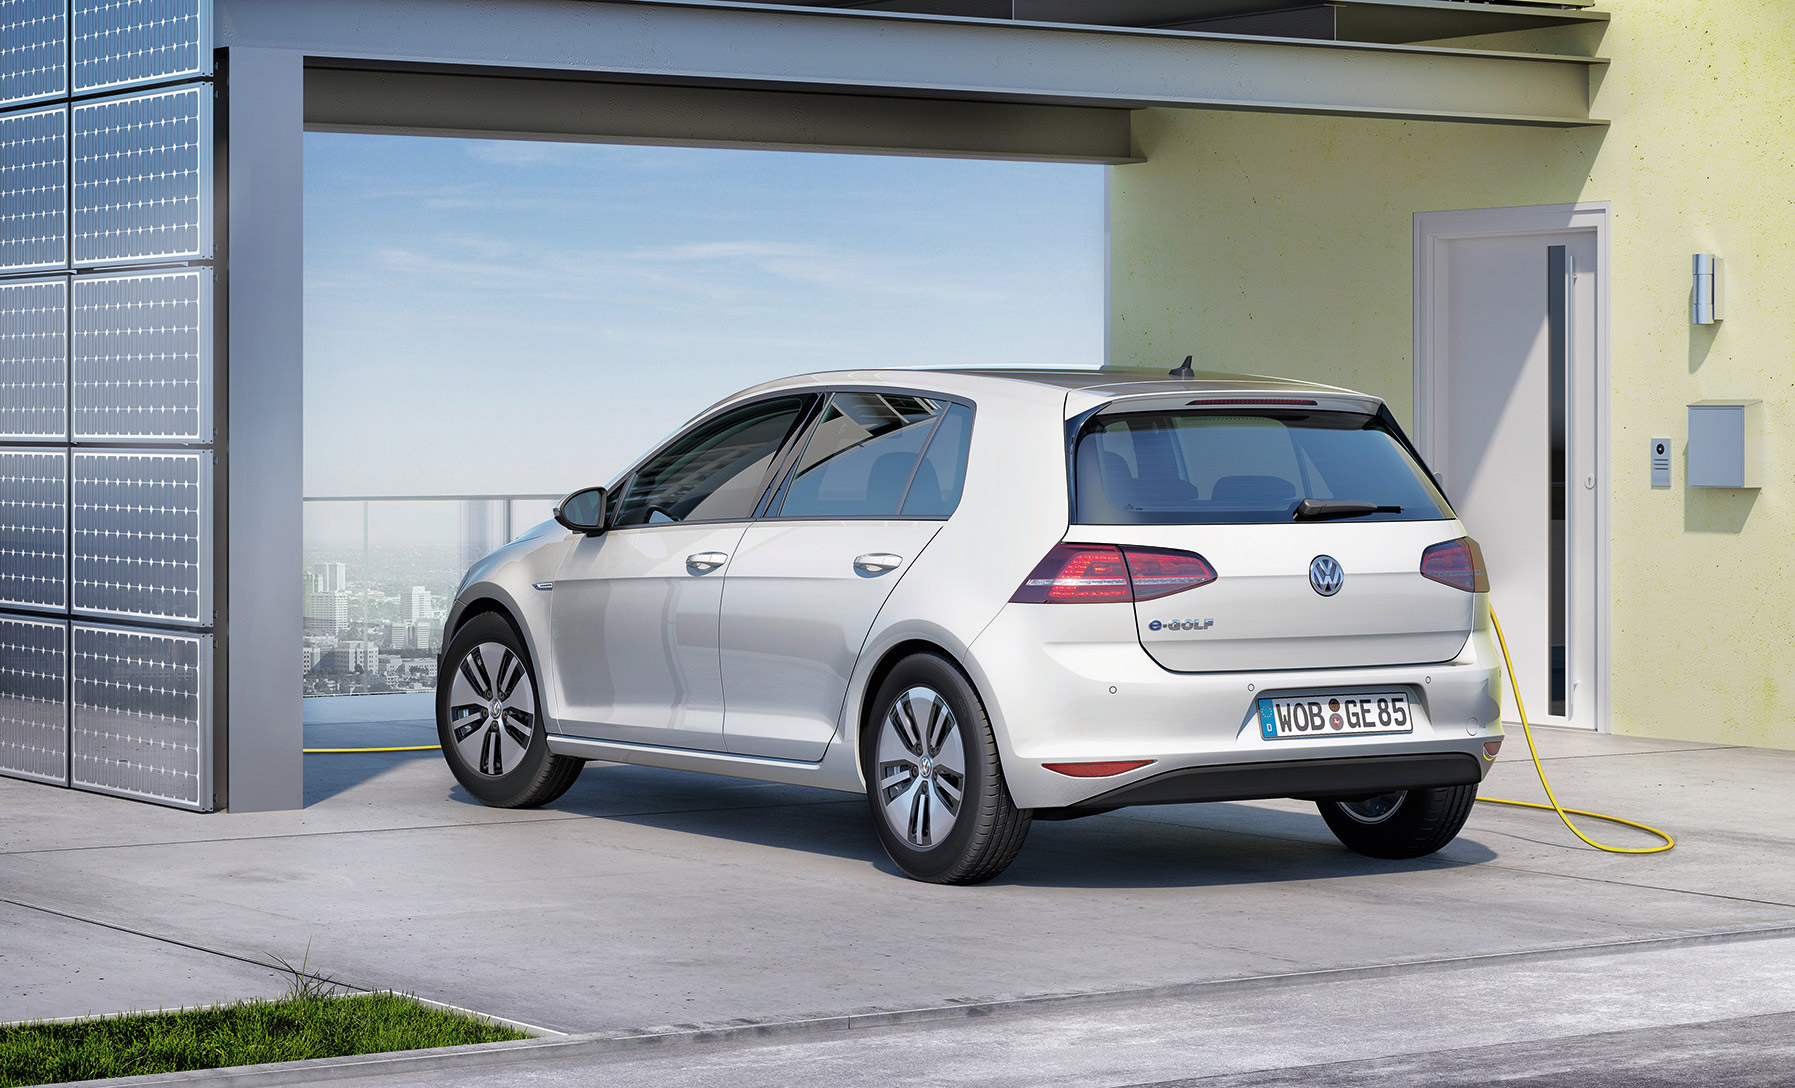 volkswagen-e-golf-012